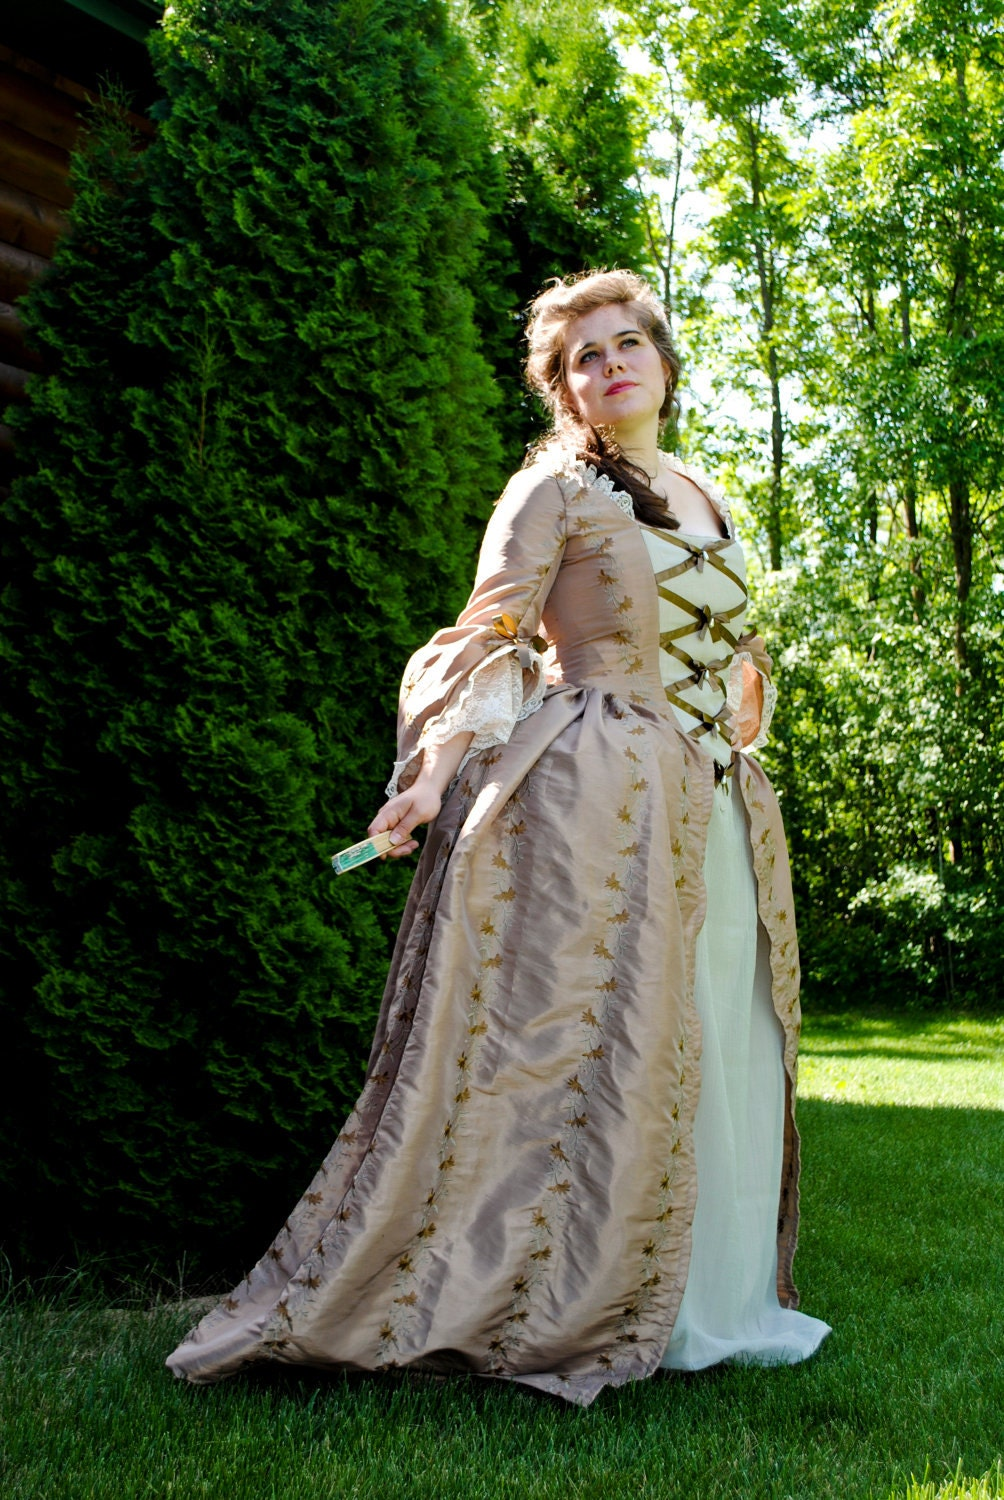 Christmas gown ideas 18th - Custom Colonial 18th Century Rococo Dress Gown 1700s Outfit Embroidered Taffeta